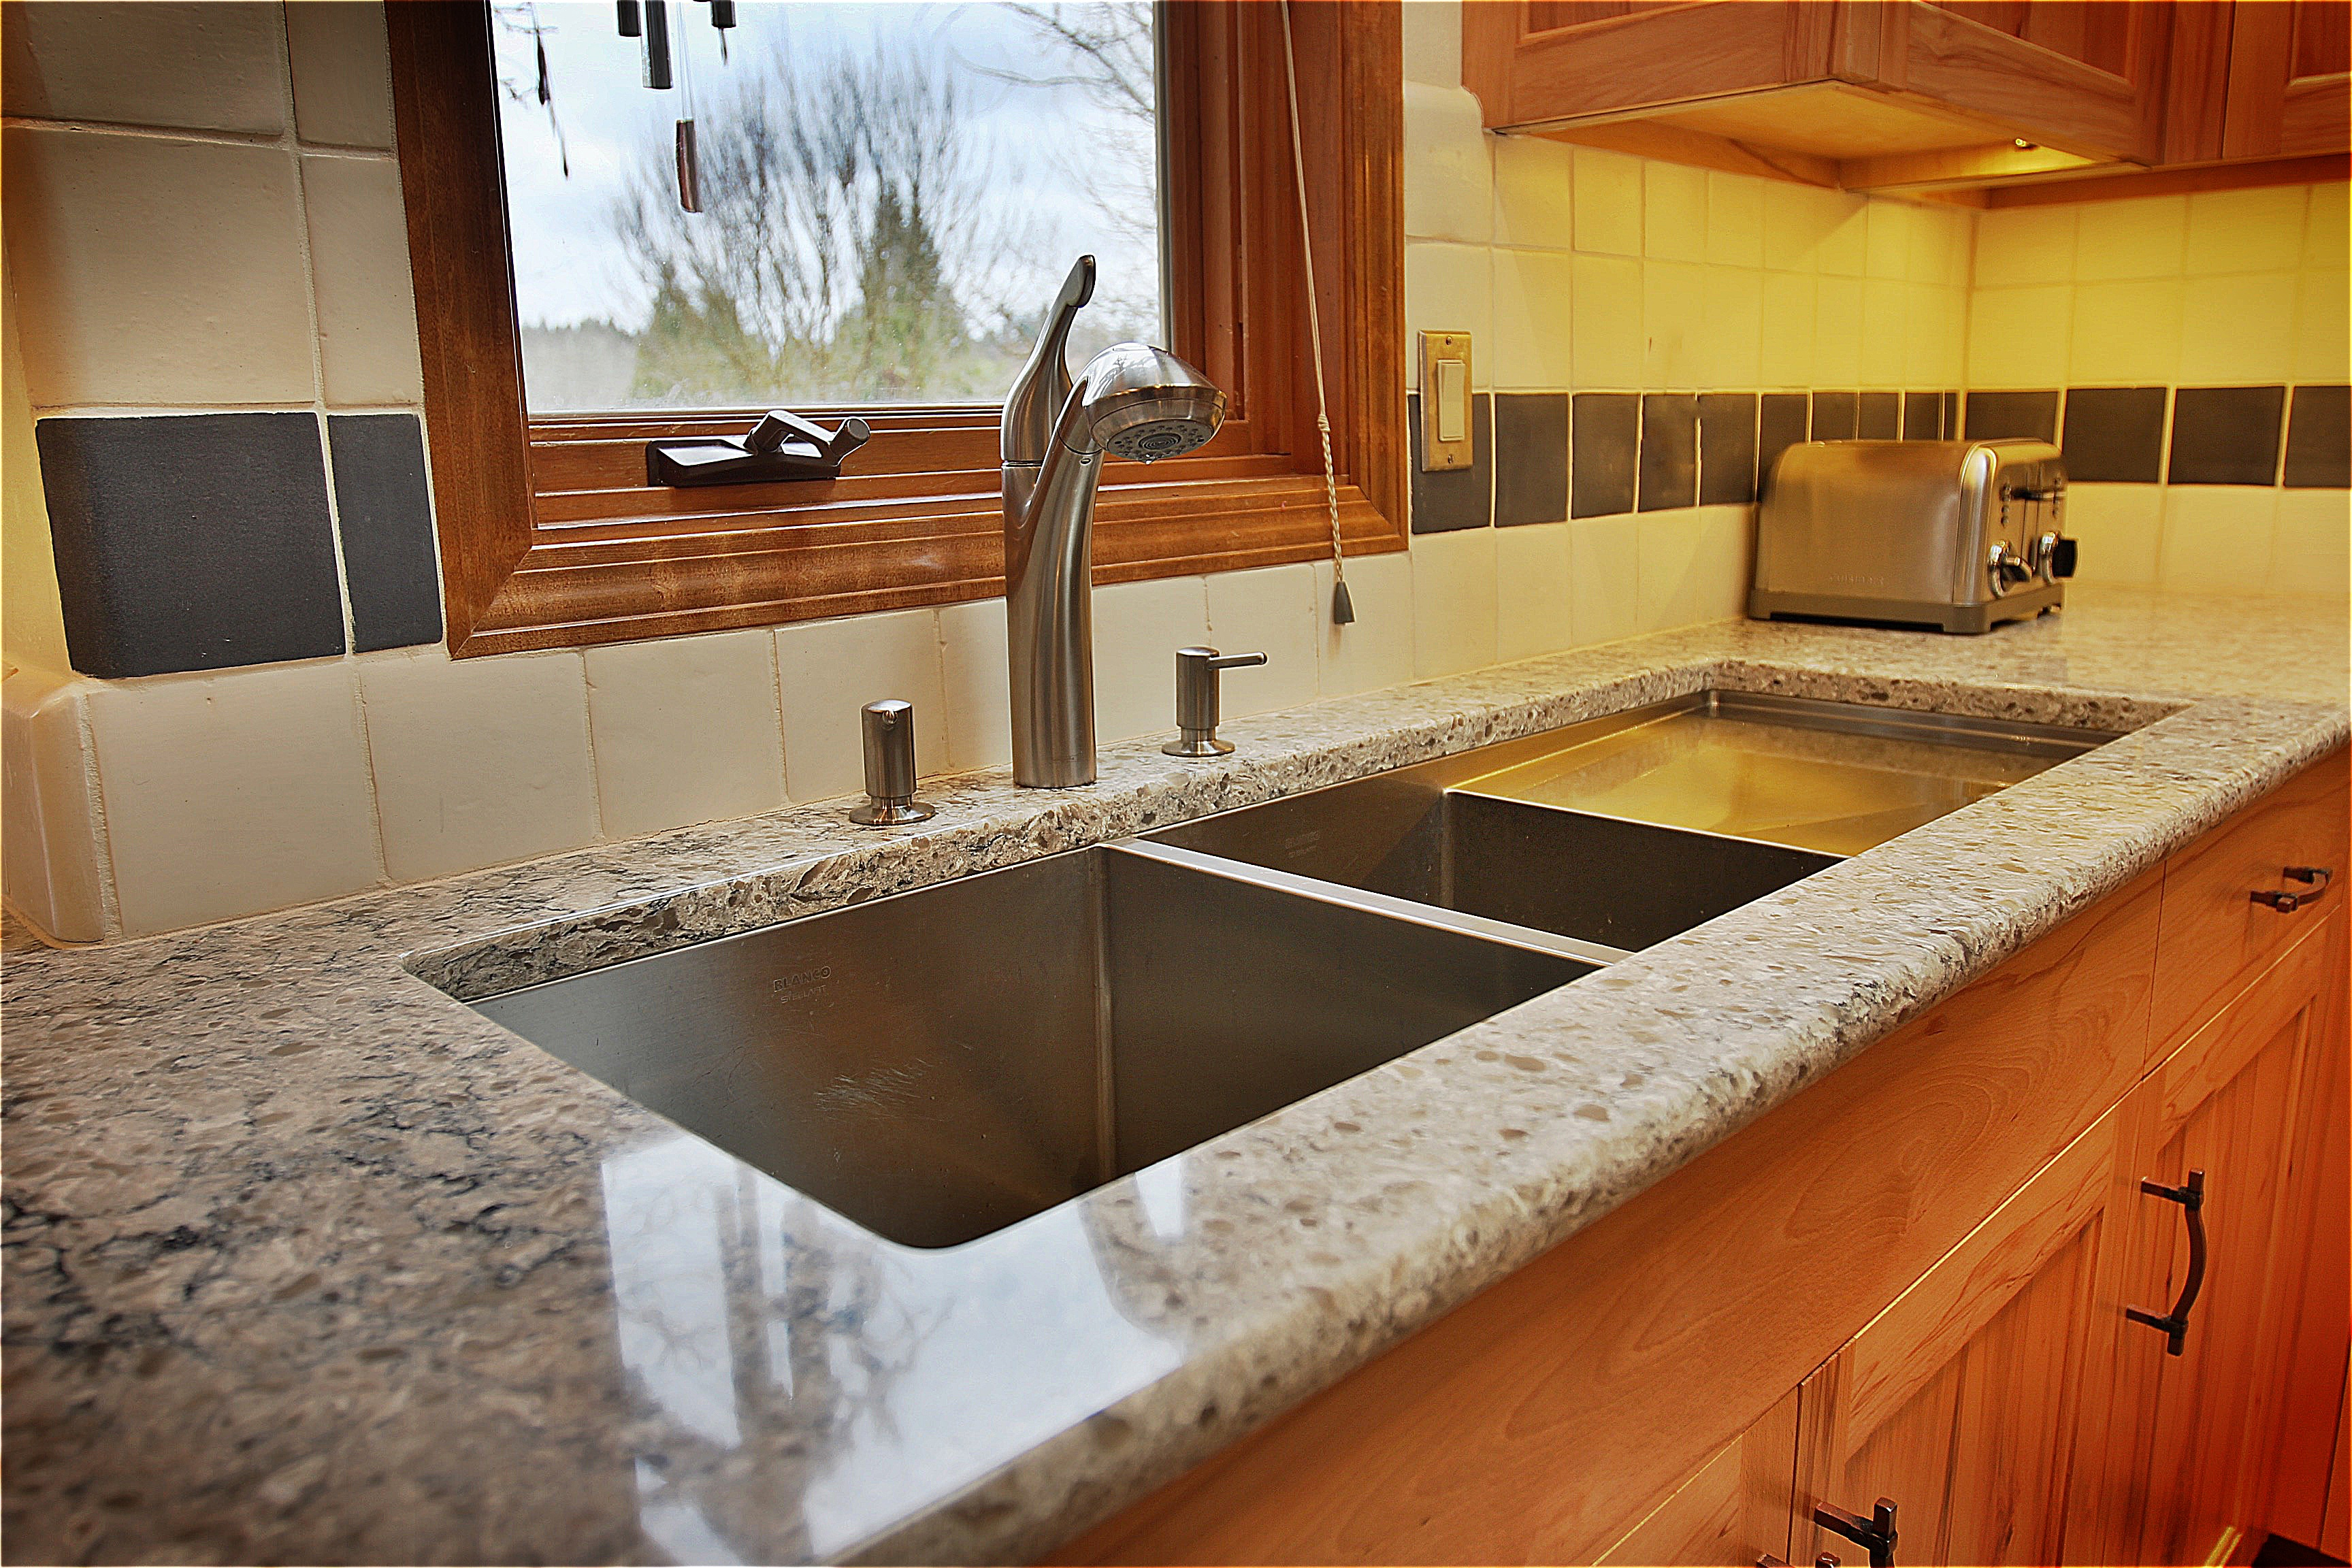 ... The Stuff Destined For The Garbage Disposal Can Be Easily Wiped Into  The Bowl Without The Annoying Flange That Is Common With A Top Mounted Sink!